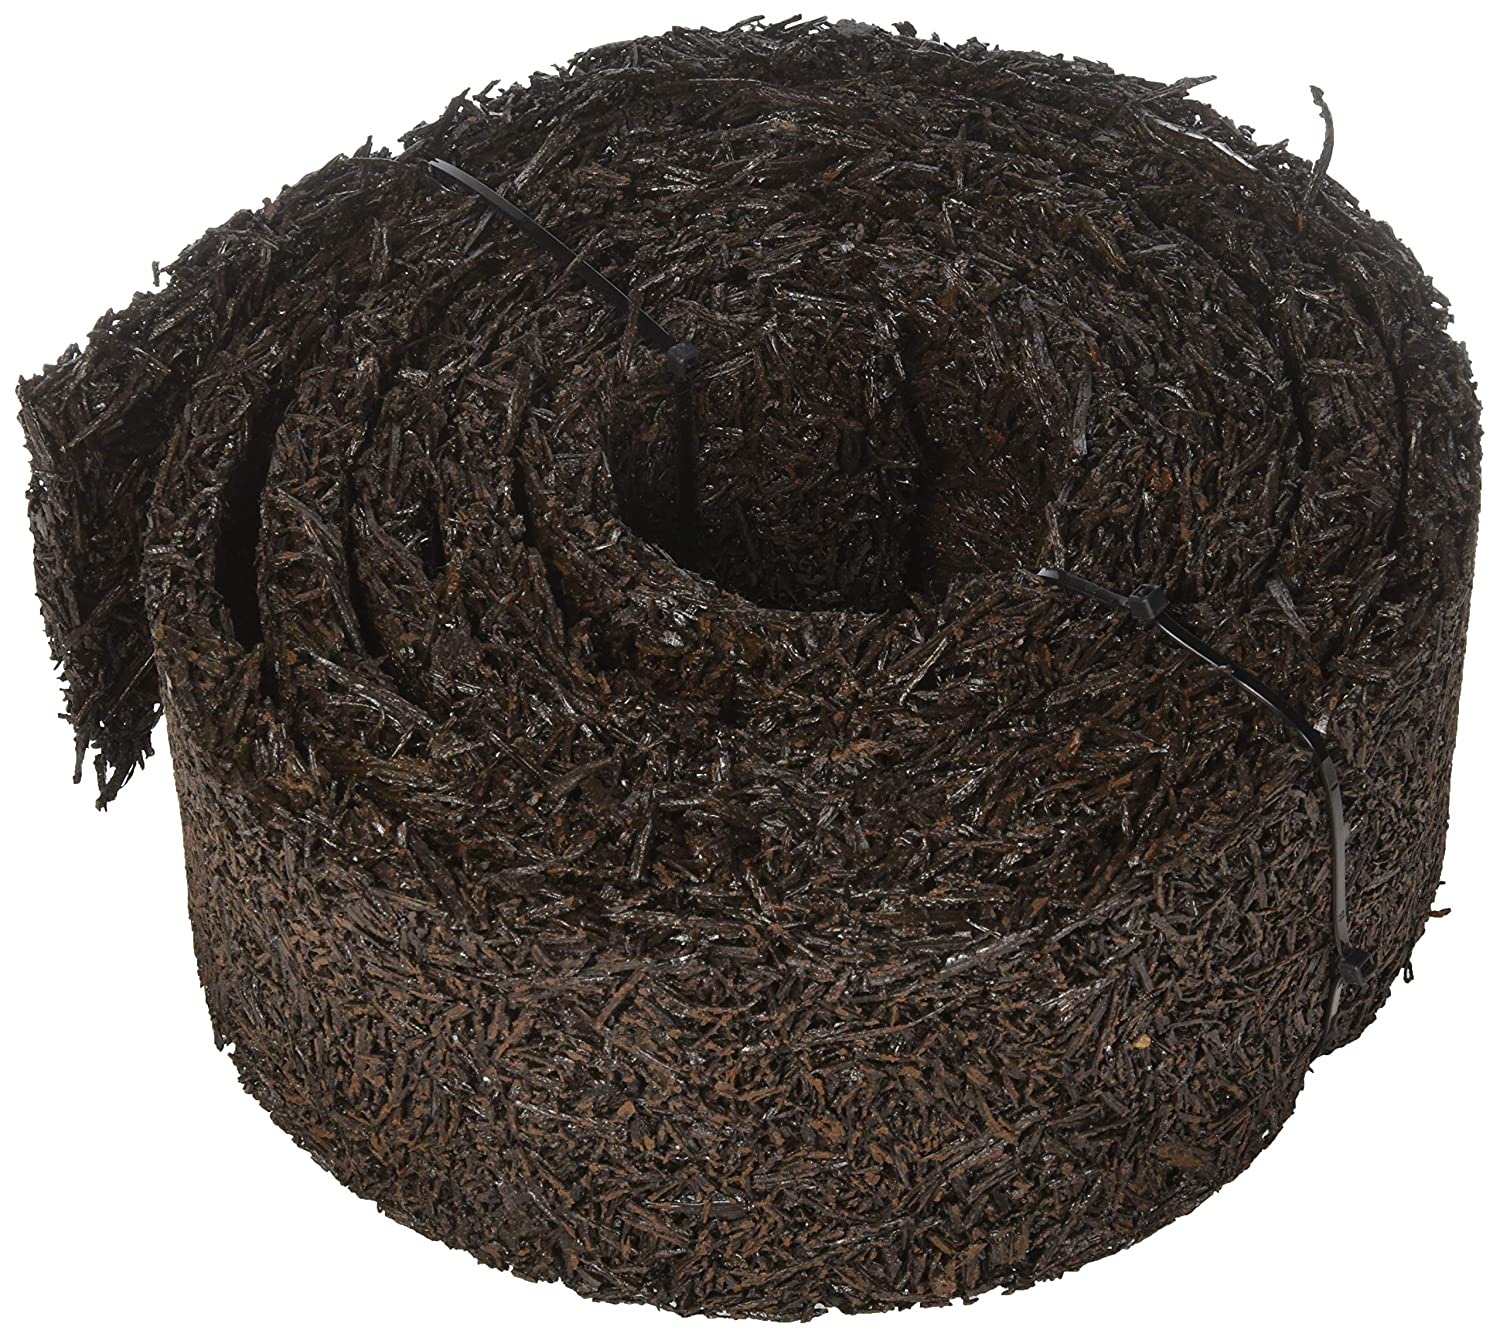 Plow & Hearth 55632 Recycled Rubber Permanent Garden Mulch Border, 120 L x 4.50 W (2 PACK)